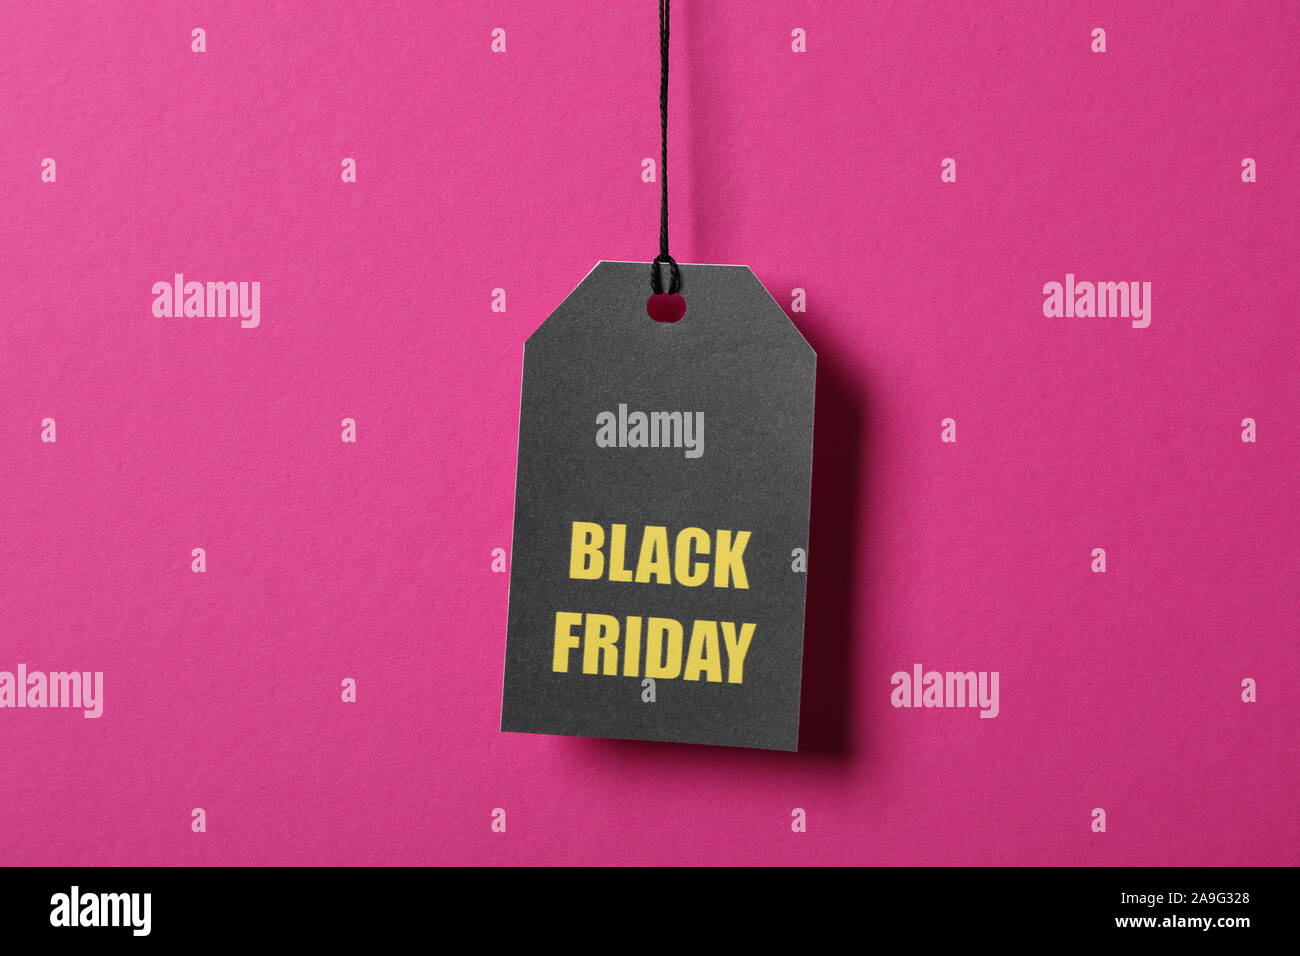 Inscription Black Friday on price tag on pink background, copy space Stock Photo